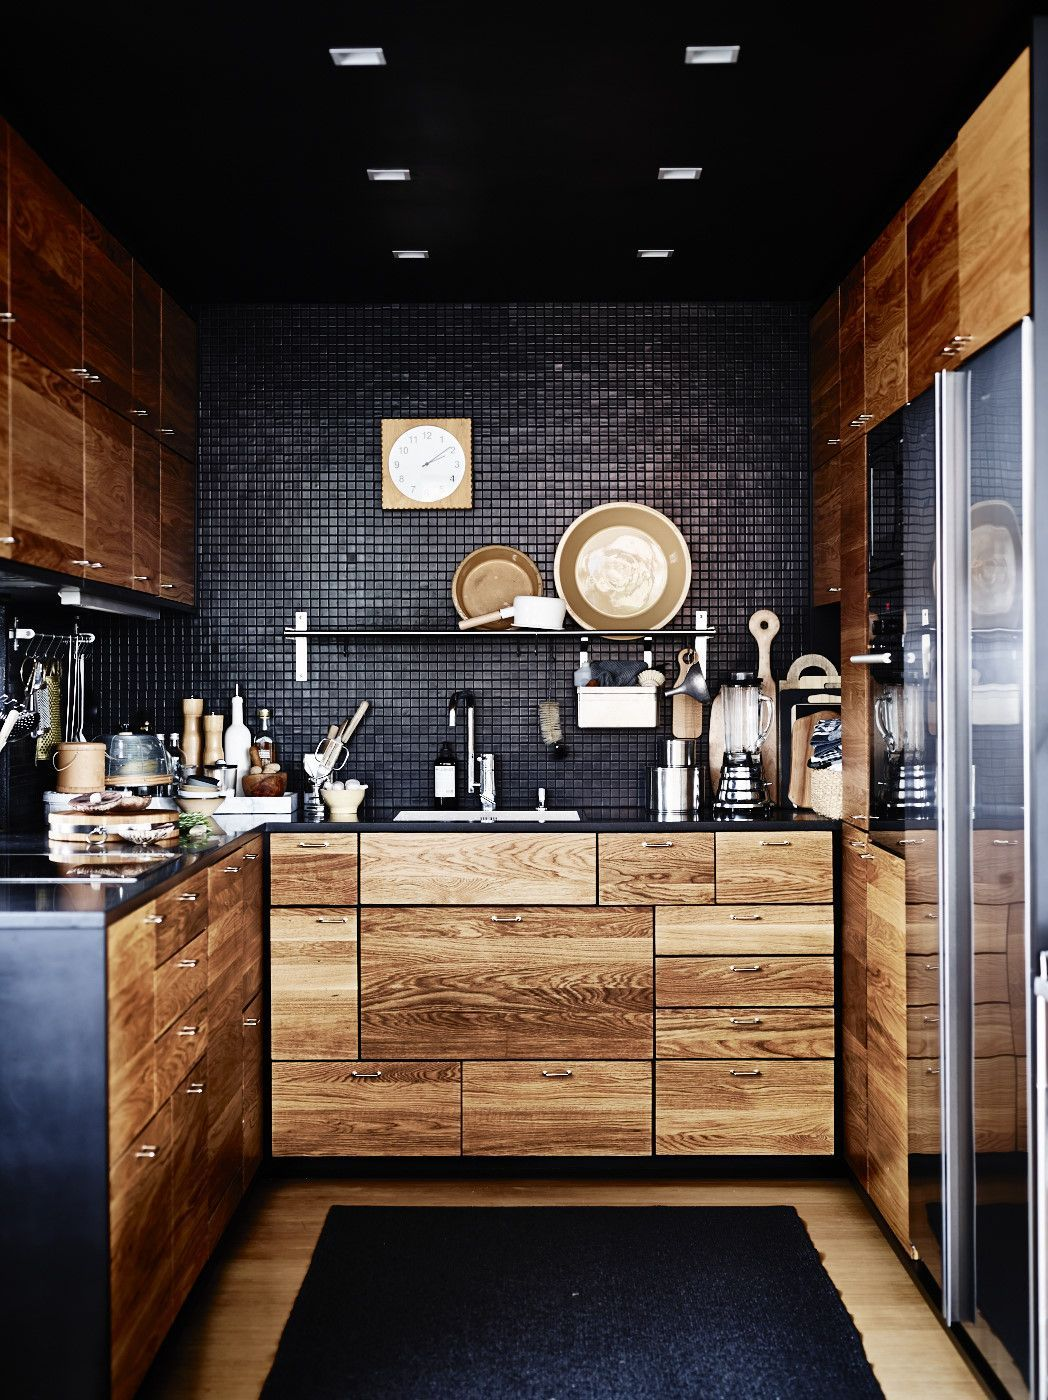 Color Spotlight Add Drama With Black Gloss  Fireclay Tile Design Delectable Modern Wooden Kitchen Designs Inspiration Design